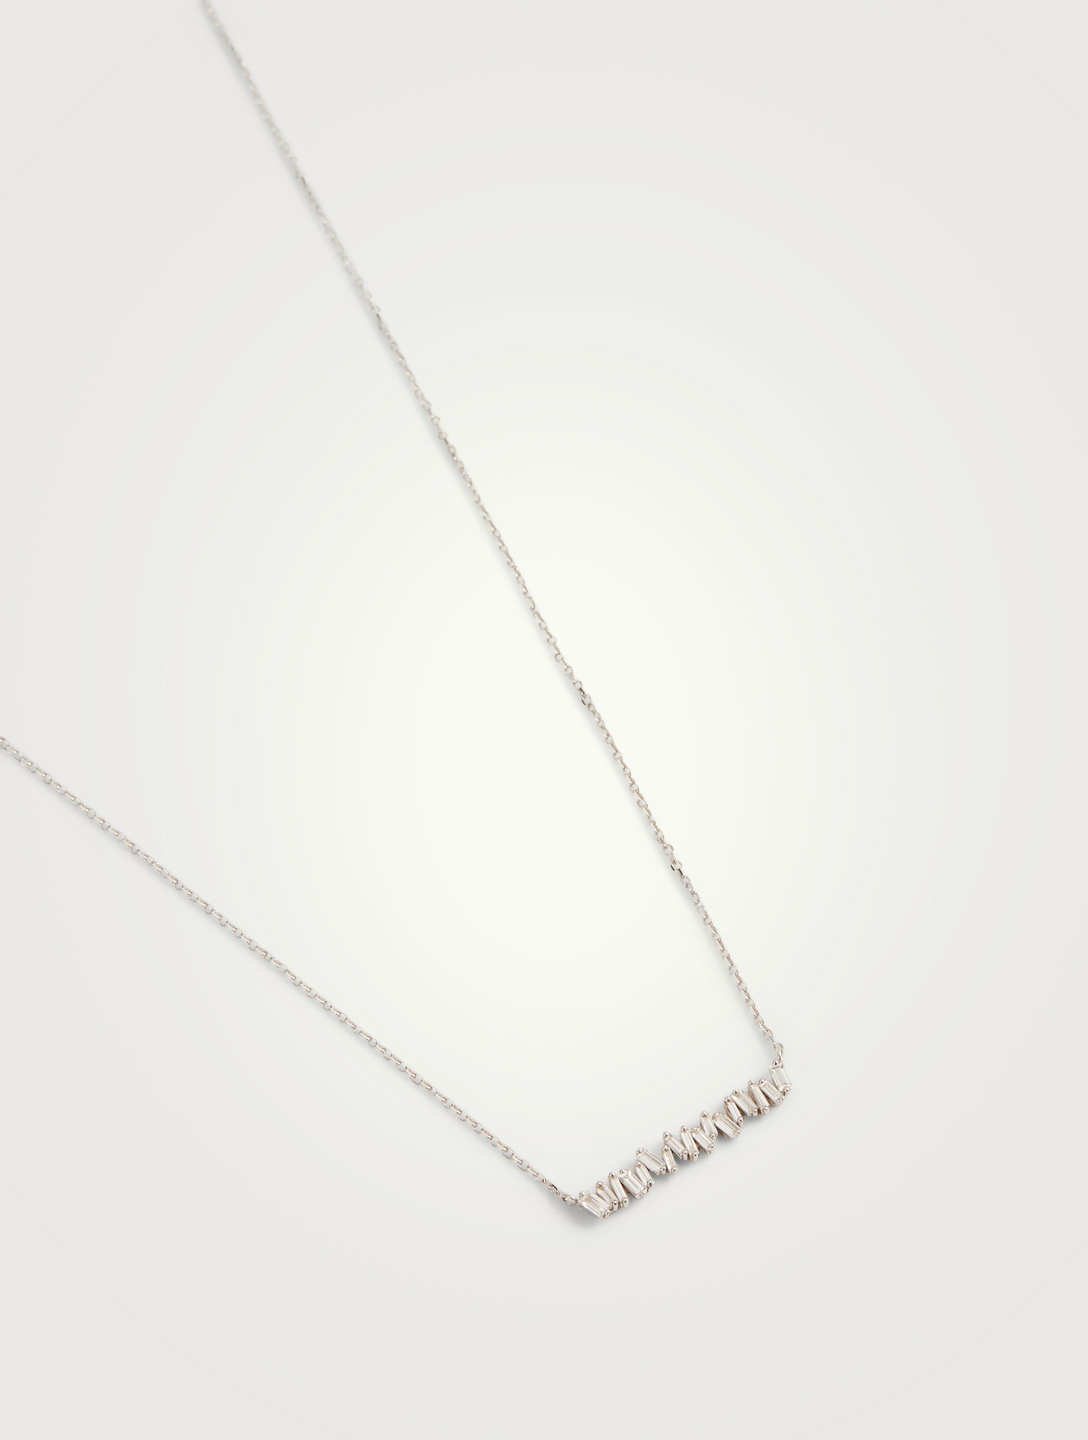 SUZANNE KALAN Small Fireworks 18K White Gold Bar Necklace With Diamonds Women's Metallic